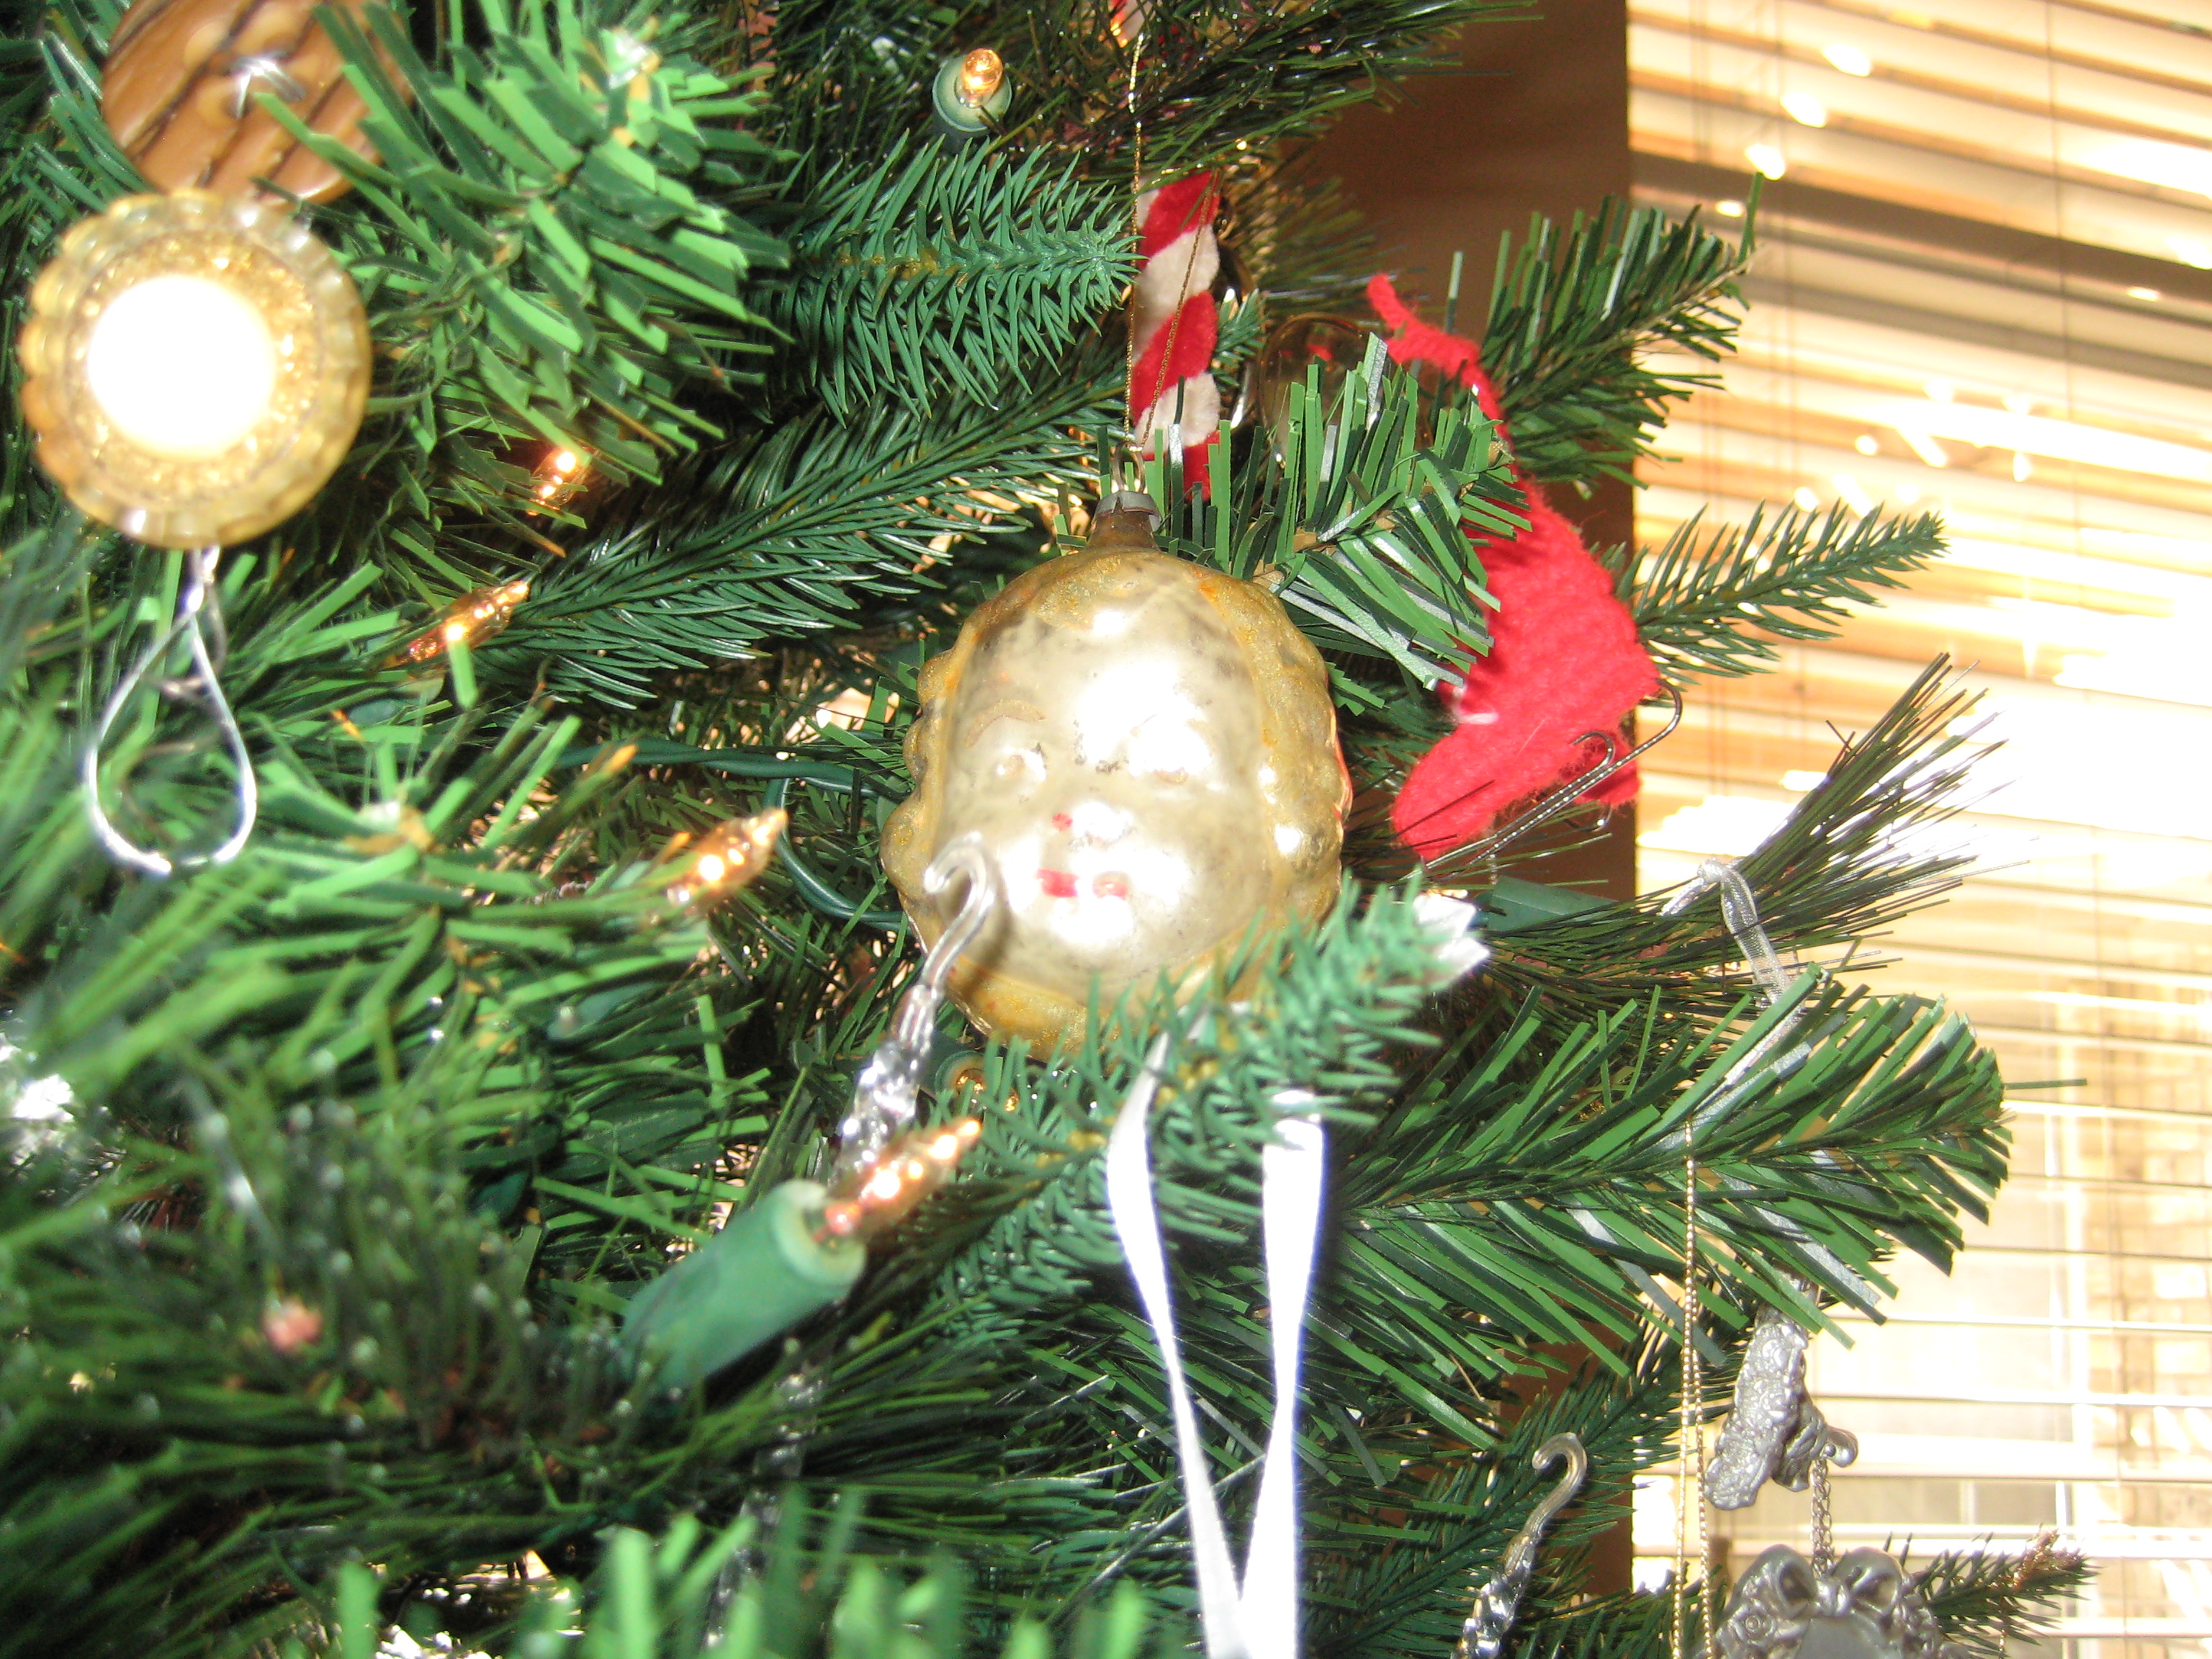 Loose ends and Christmas decorations 007